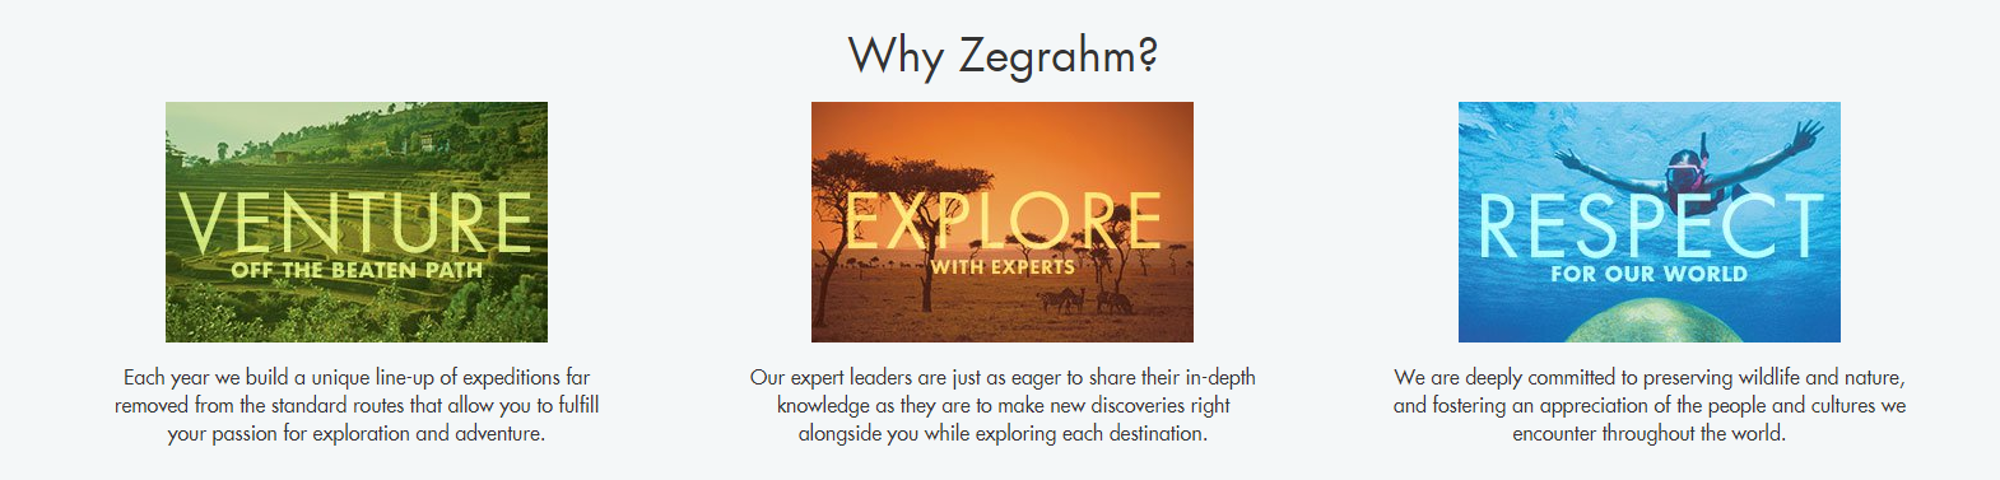 Why Should You Travel With Zegrahm Expeditions?